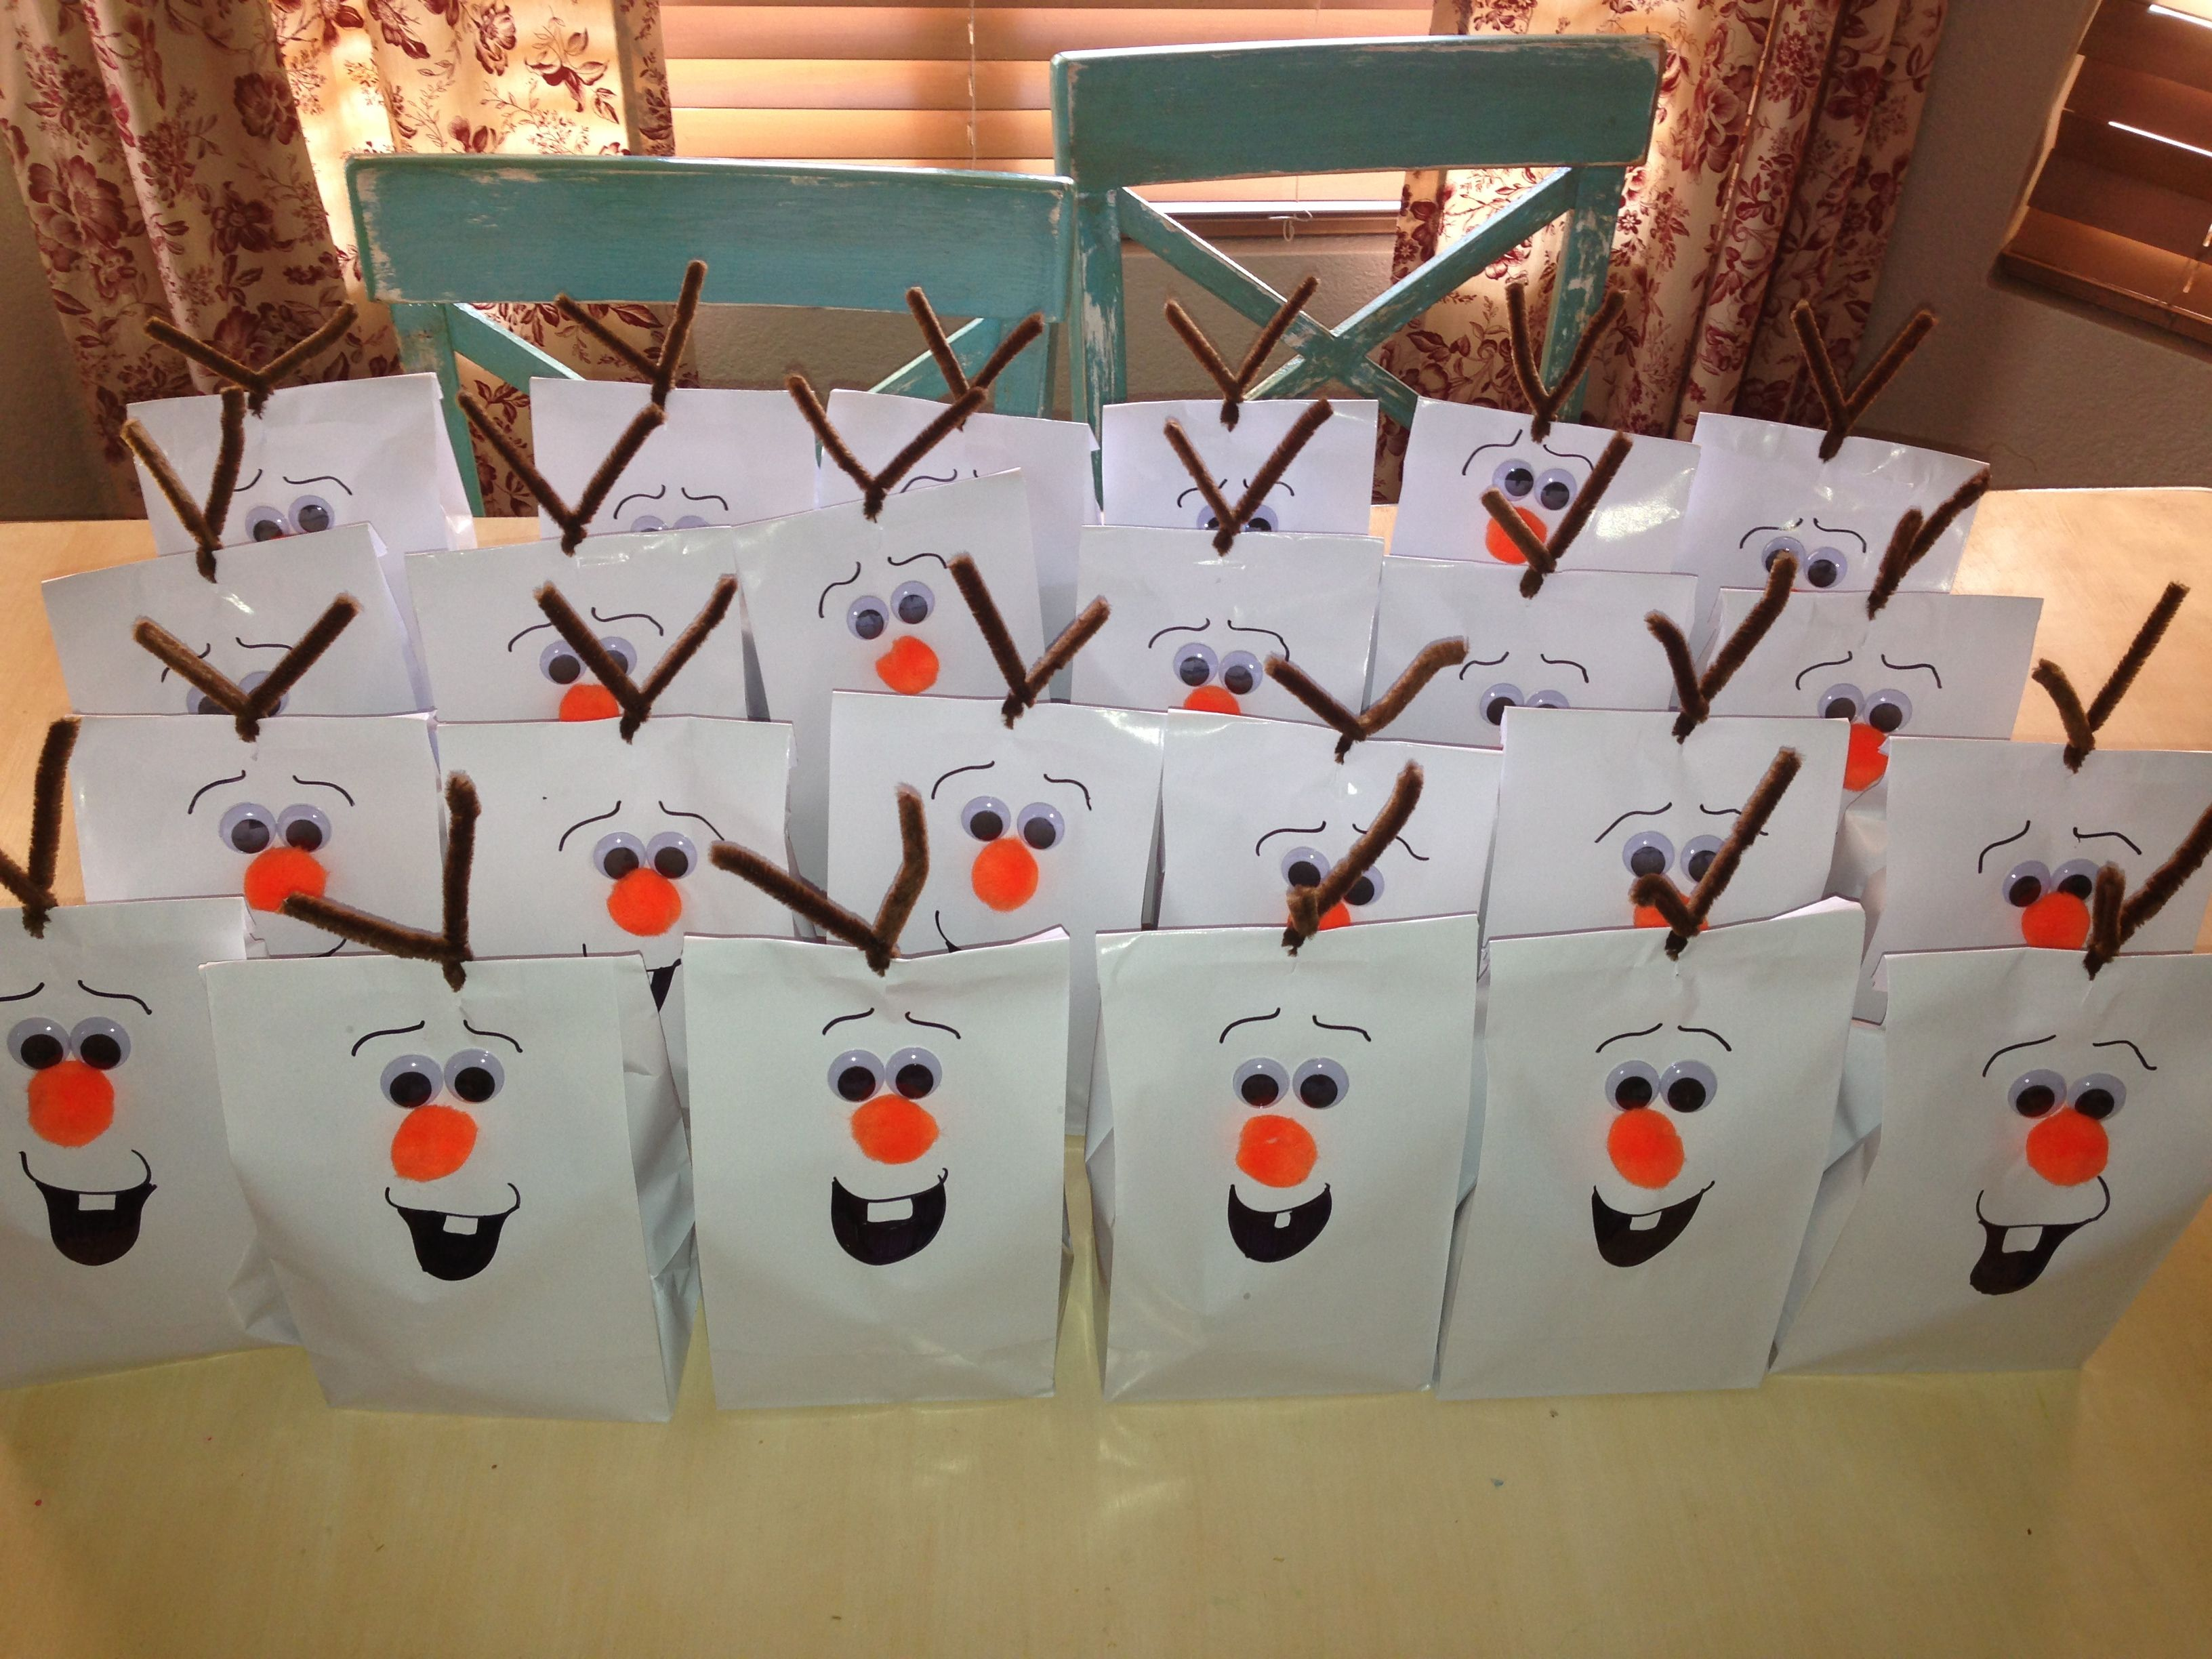 Olaf party gift bags | Disney's Frozen party ideas | Pinterest ...